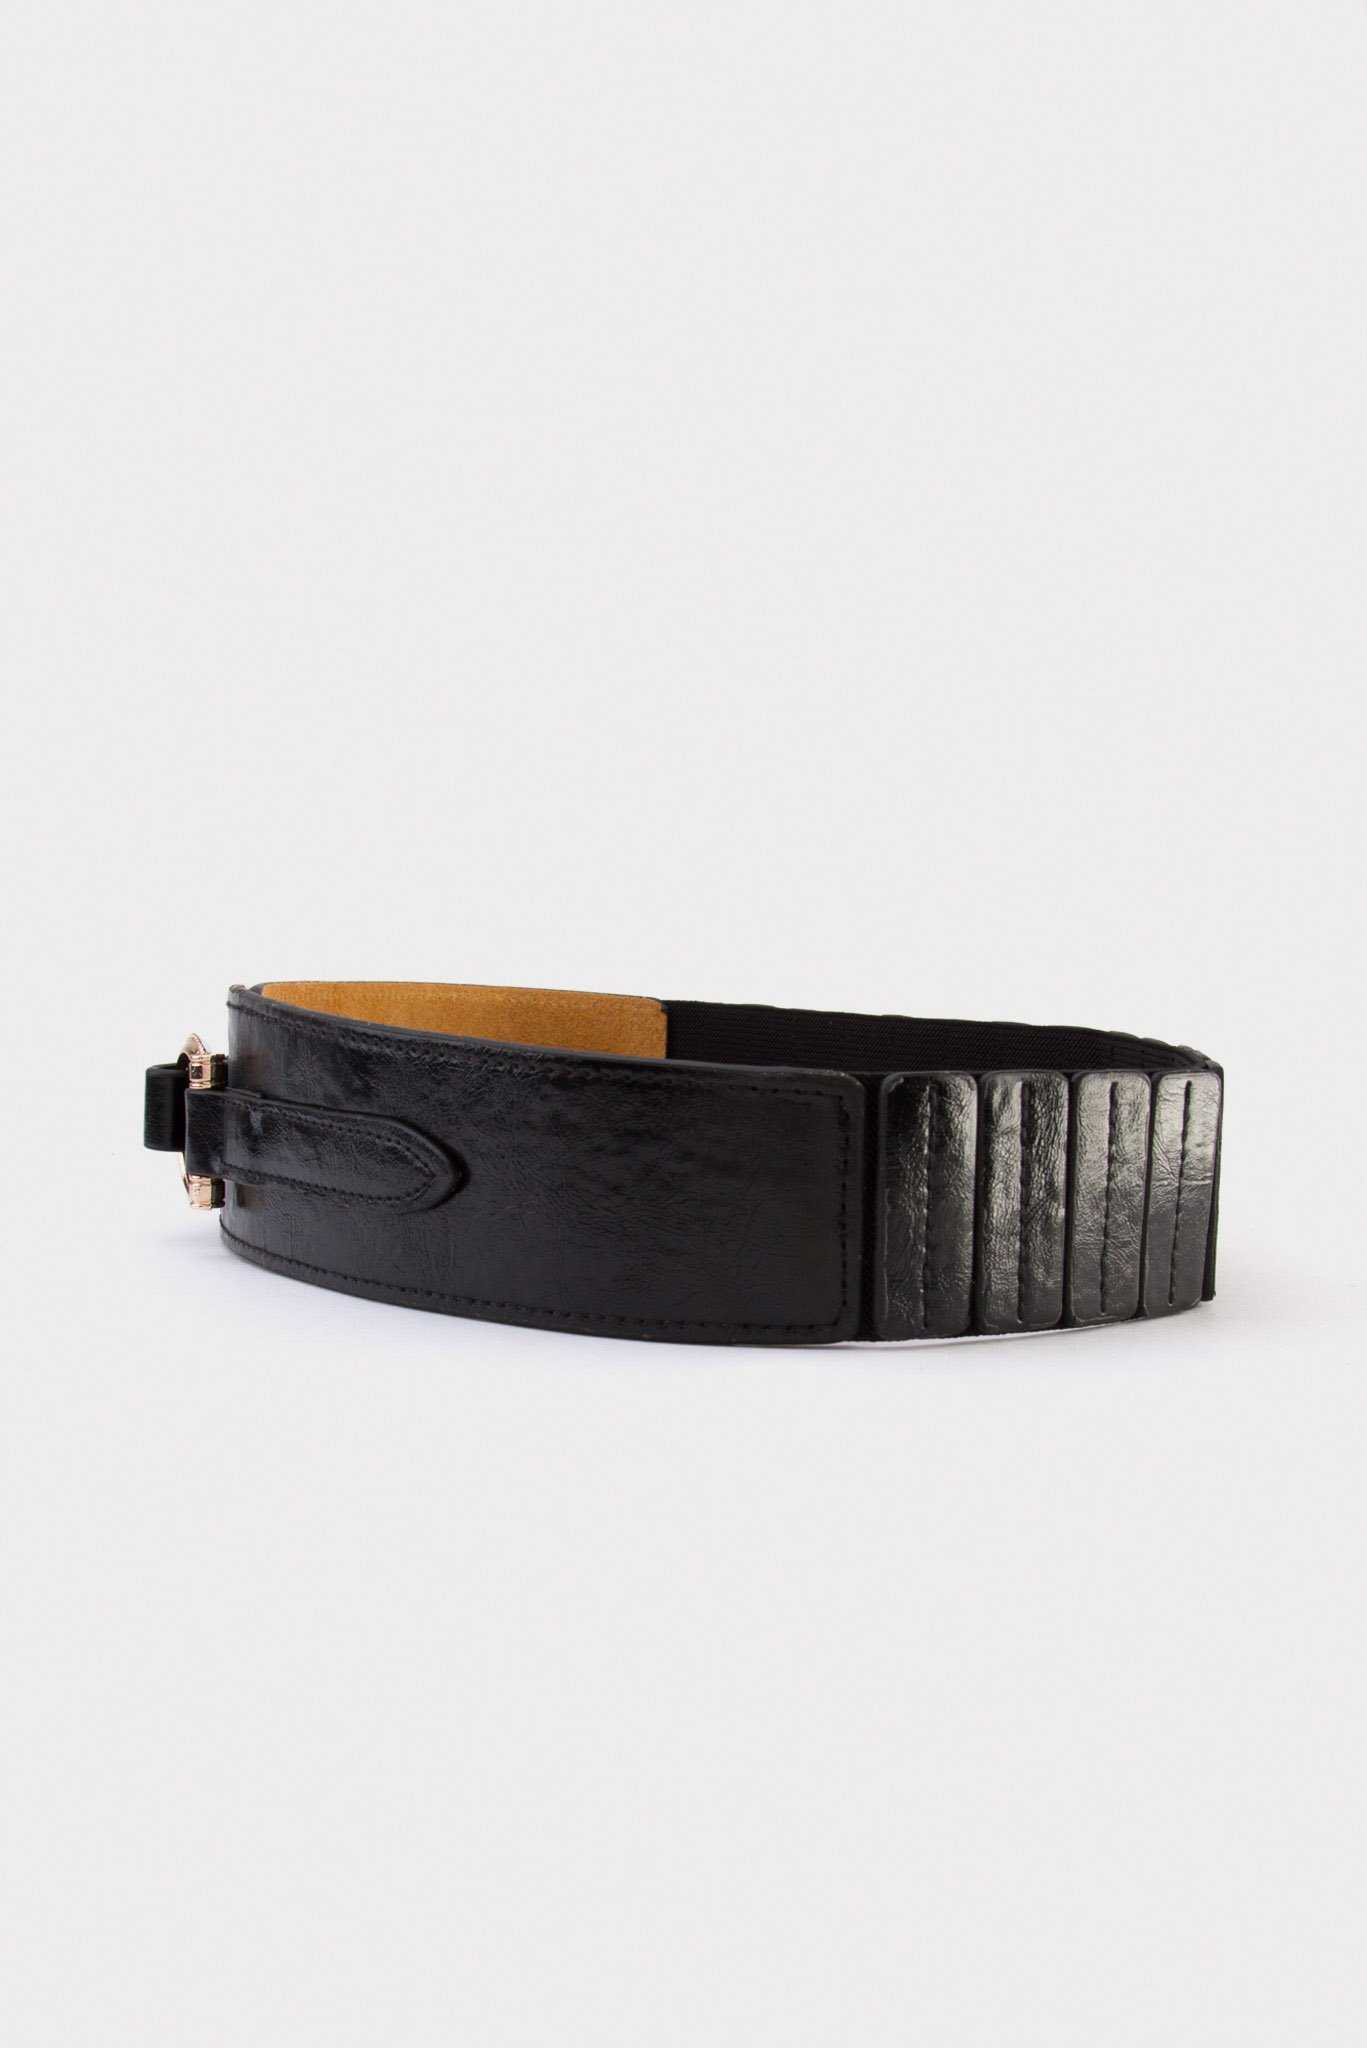 Hook Belt | Raw Orange